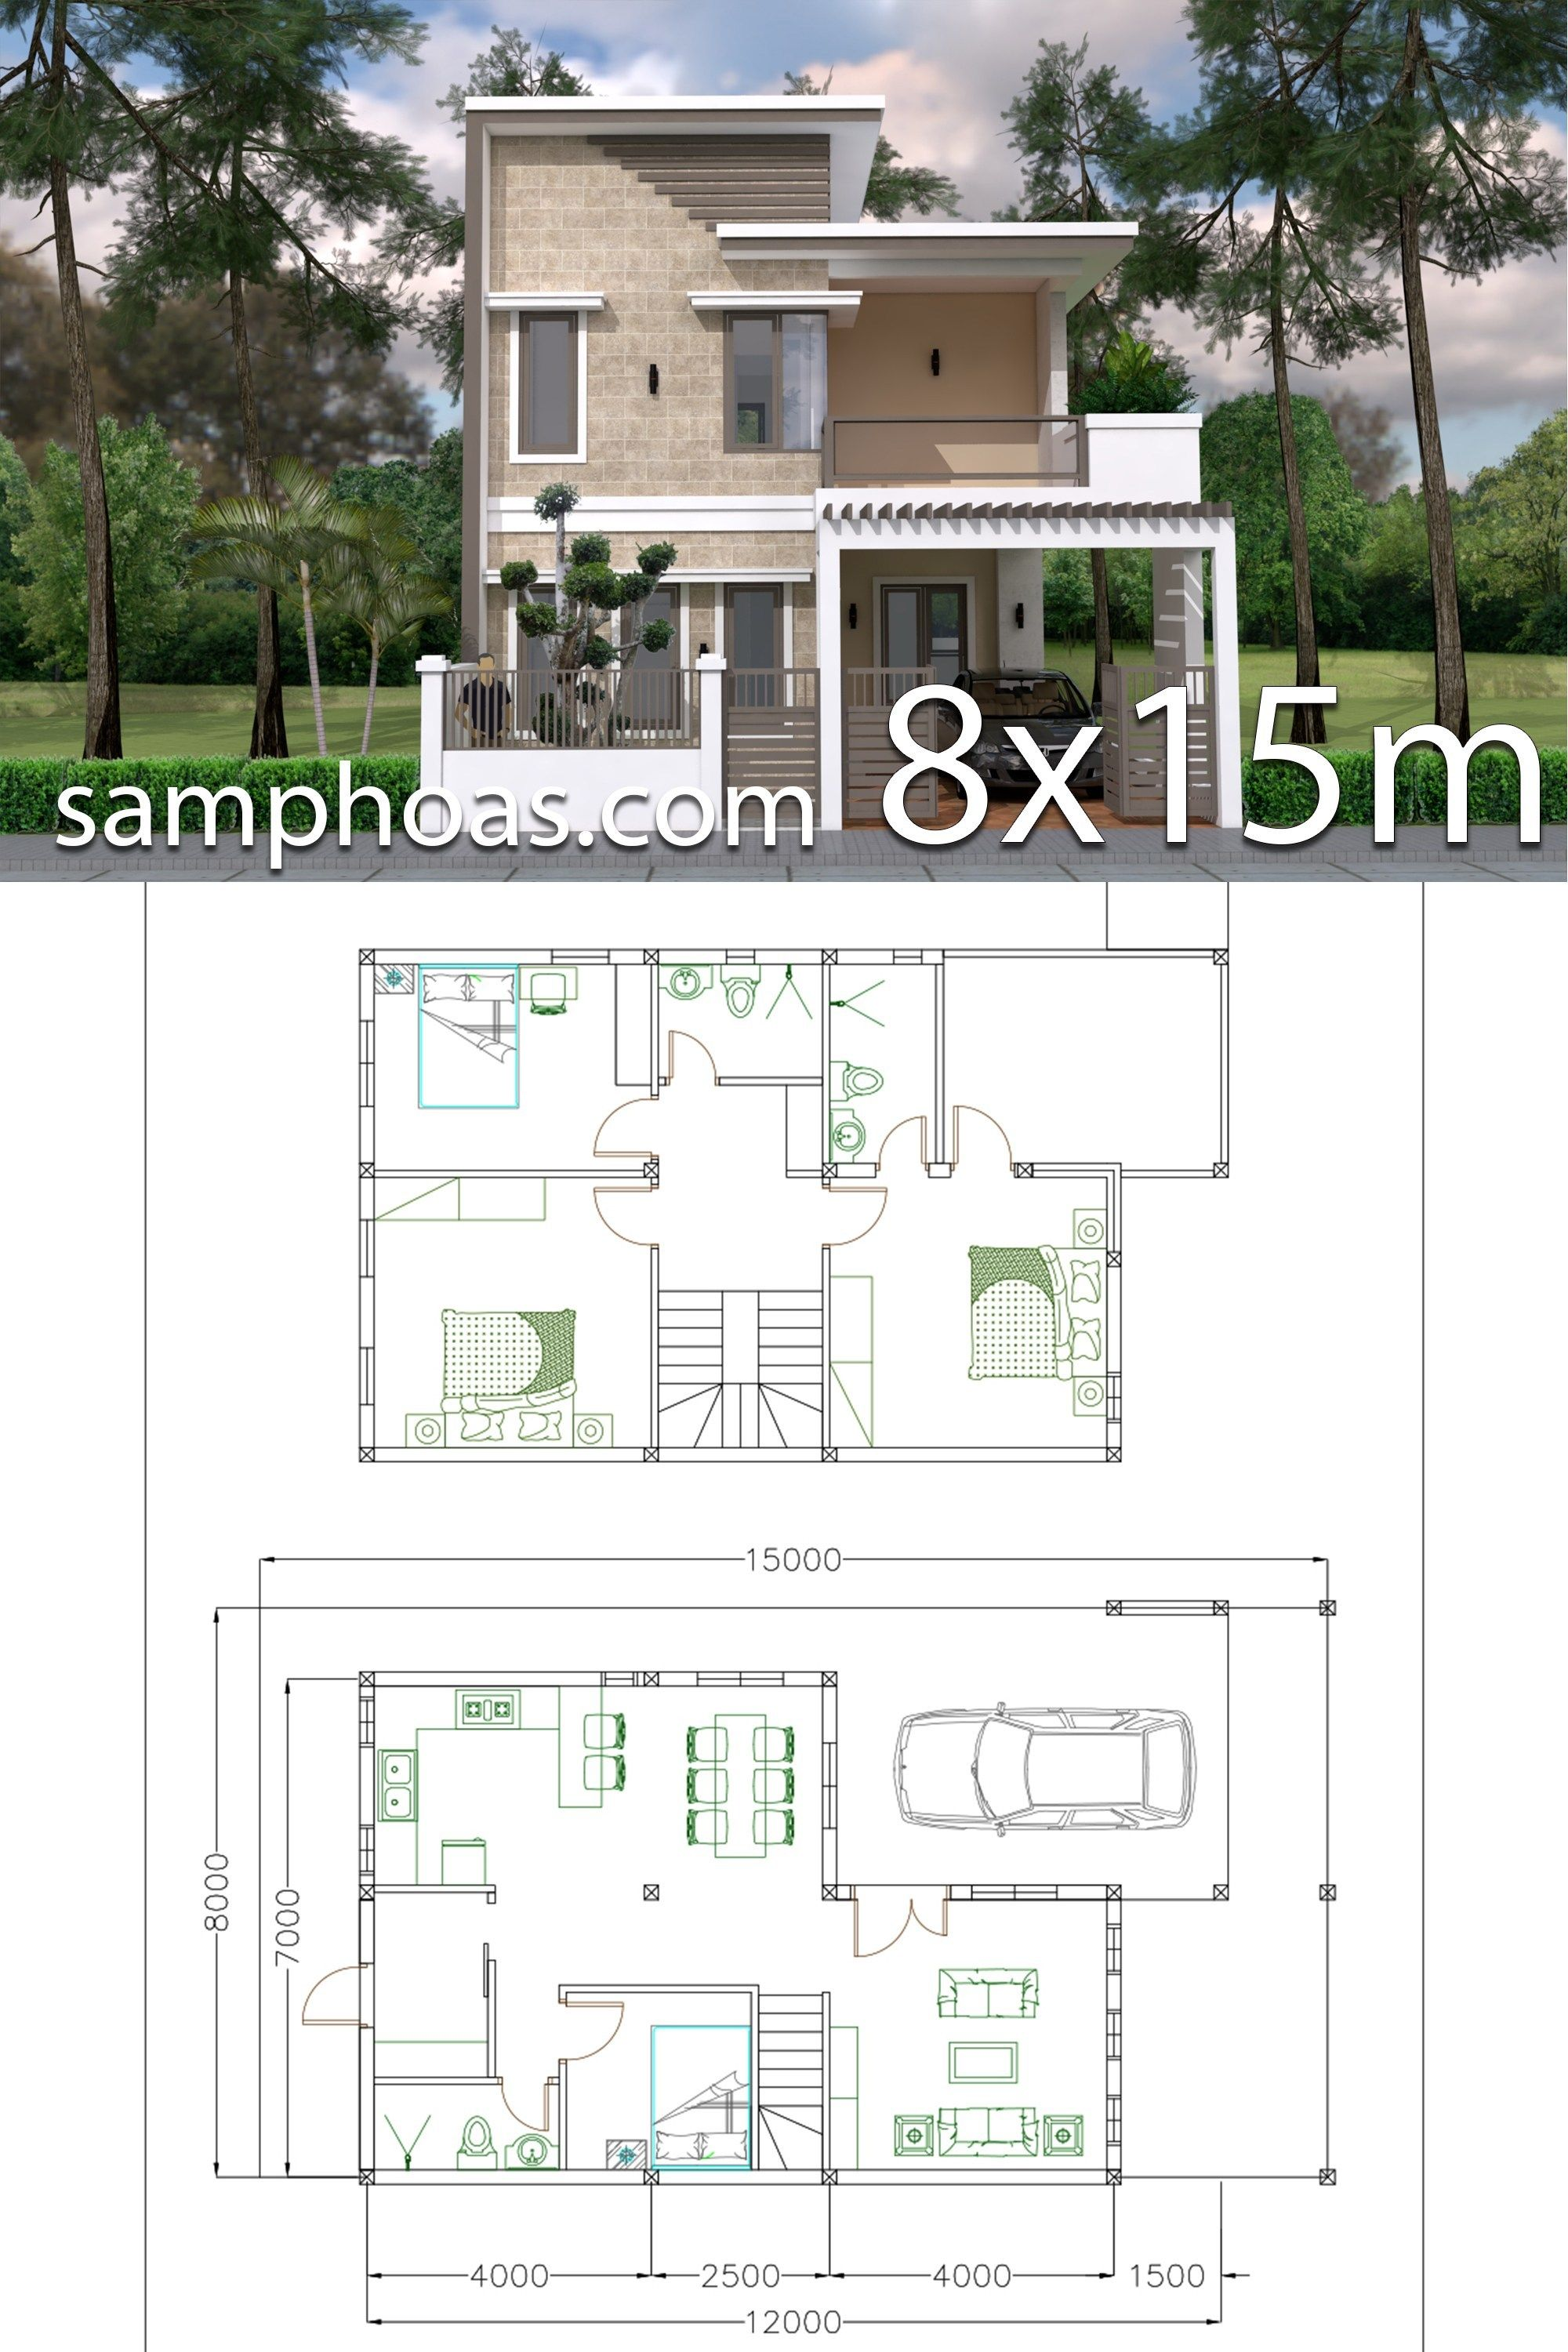 Home Design Plan 7x12m With 4 Bedrooms Plot 8x15 In 2020 House Designs Exterior Home Design Plan Duplex House Plans